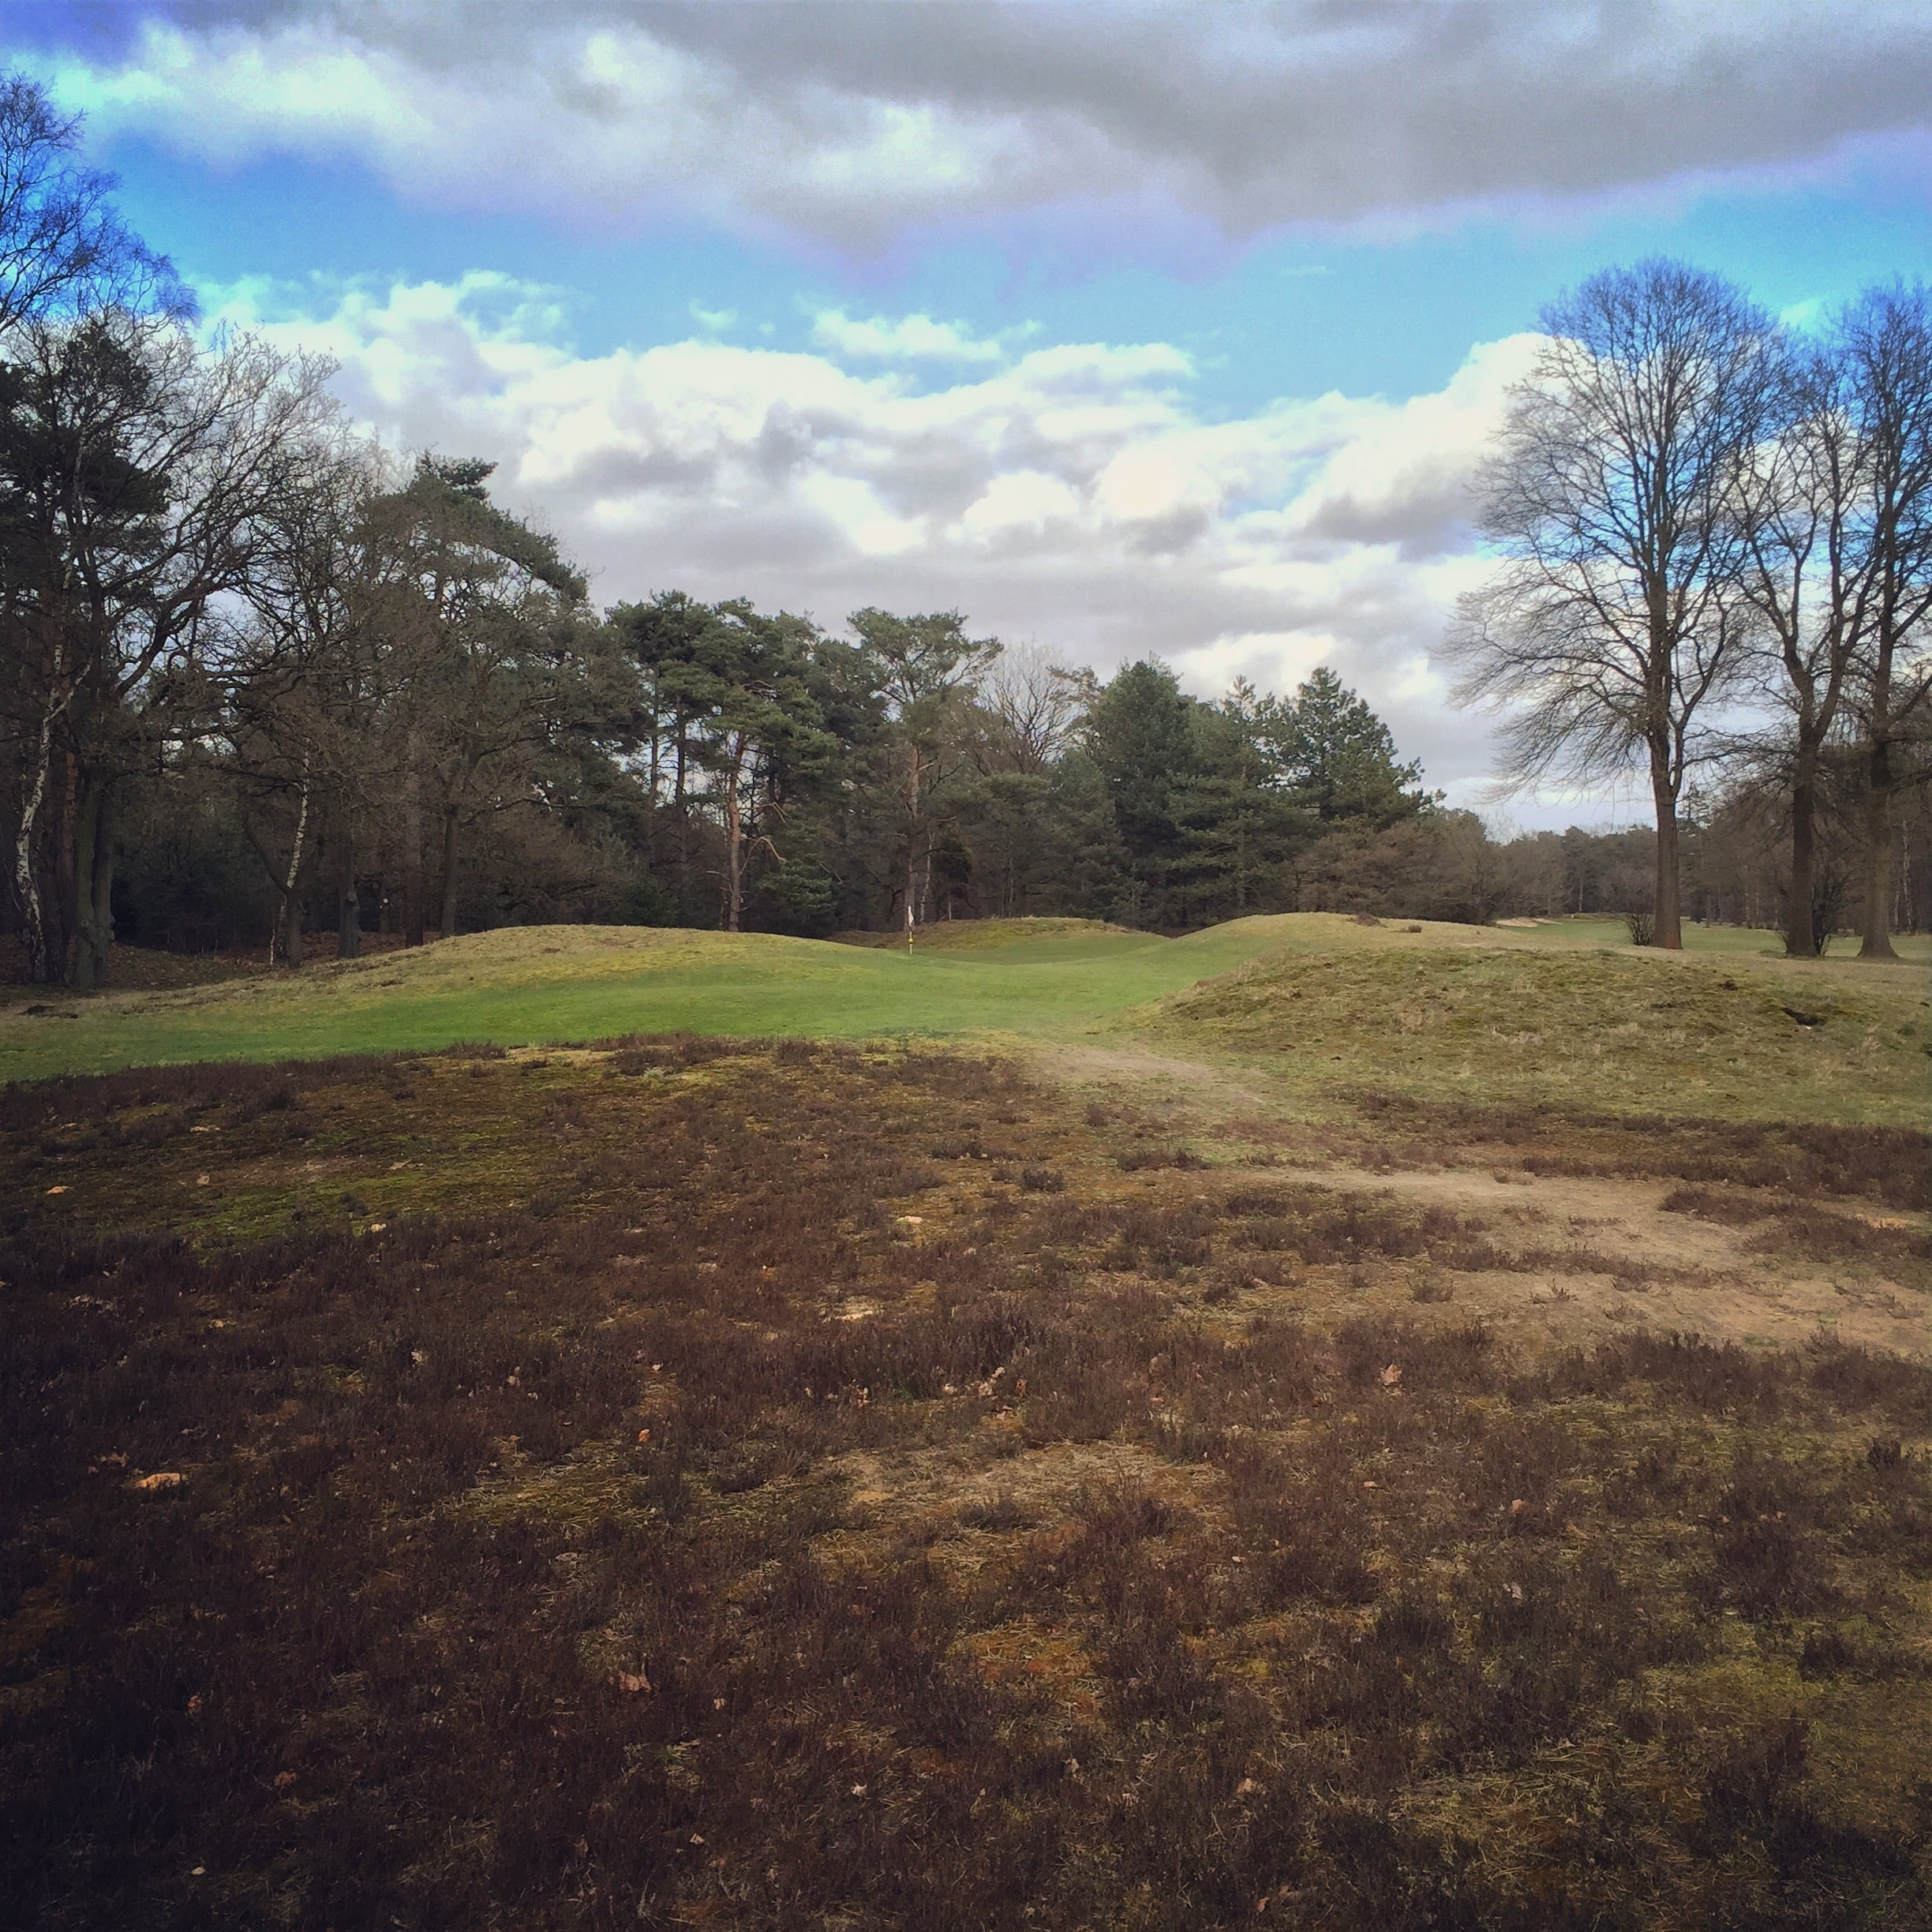 The 3rd hole at Eindhoven is cleverly tucked behind some natural landforms